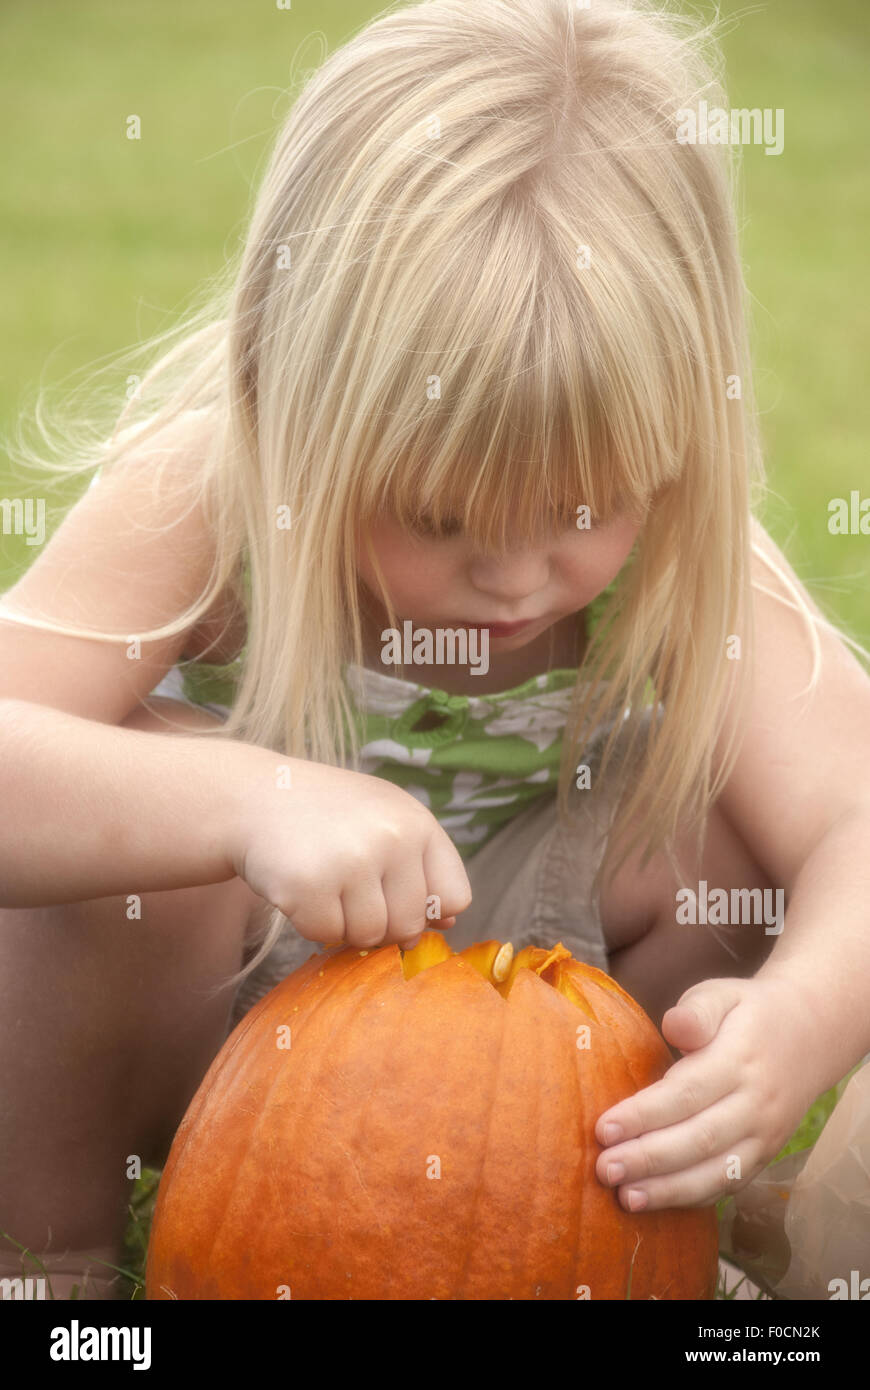 Little blonde girl getting a pumpkin ready to carve. - Stock Image